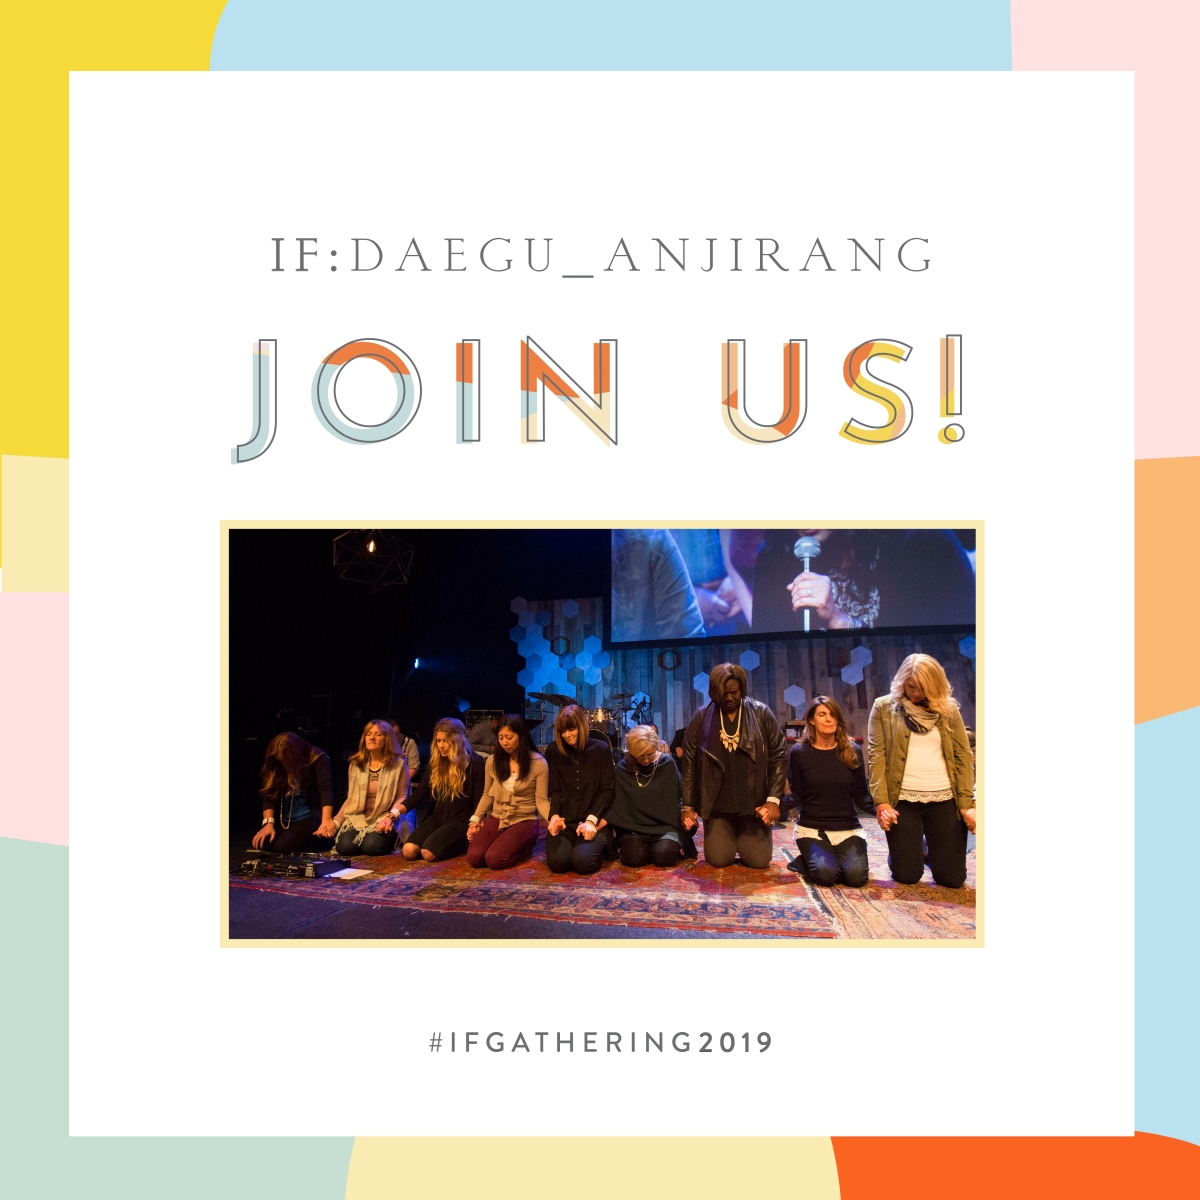 #ifgathering2019 last day summary